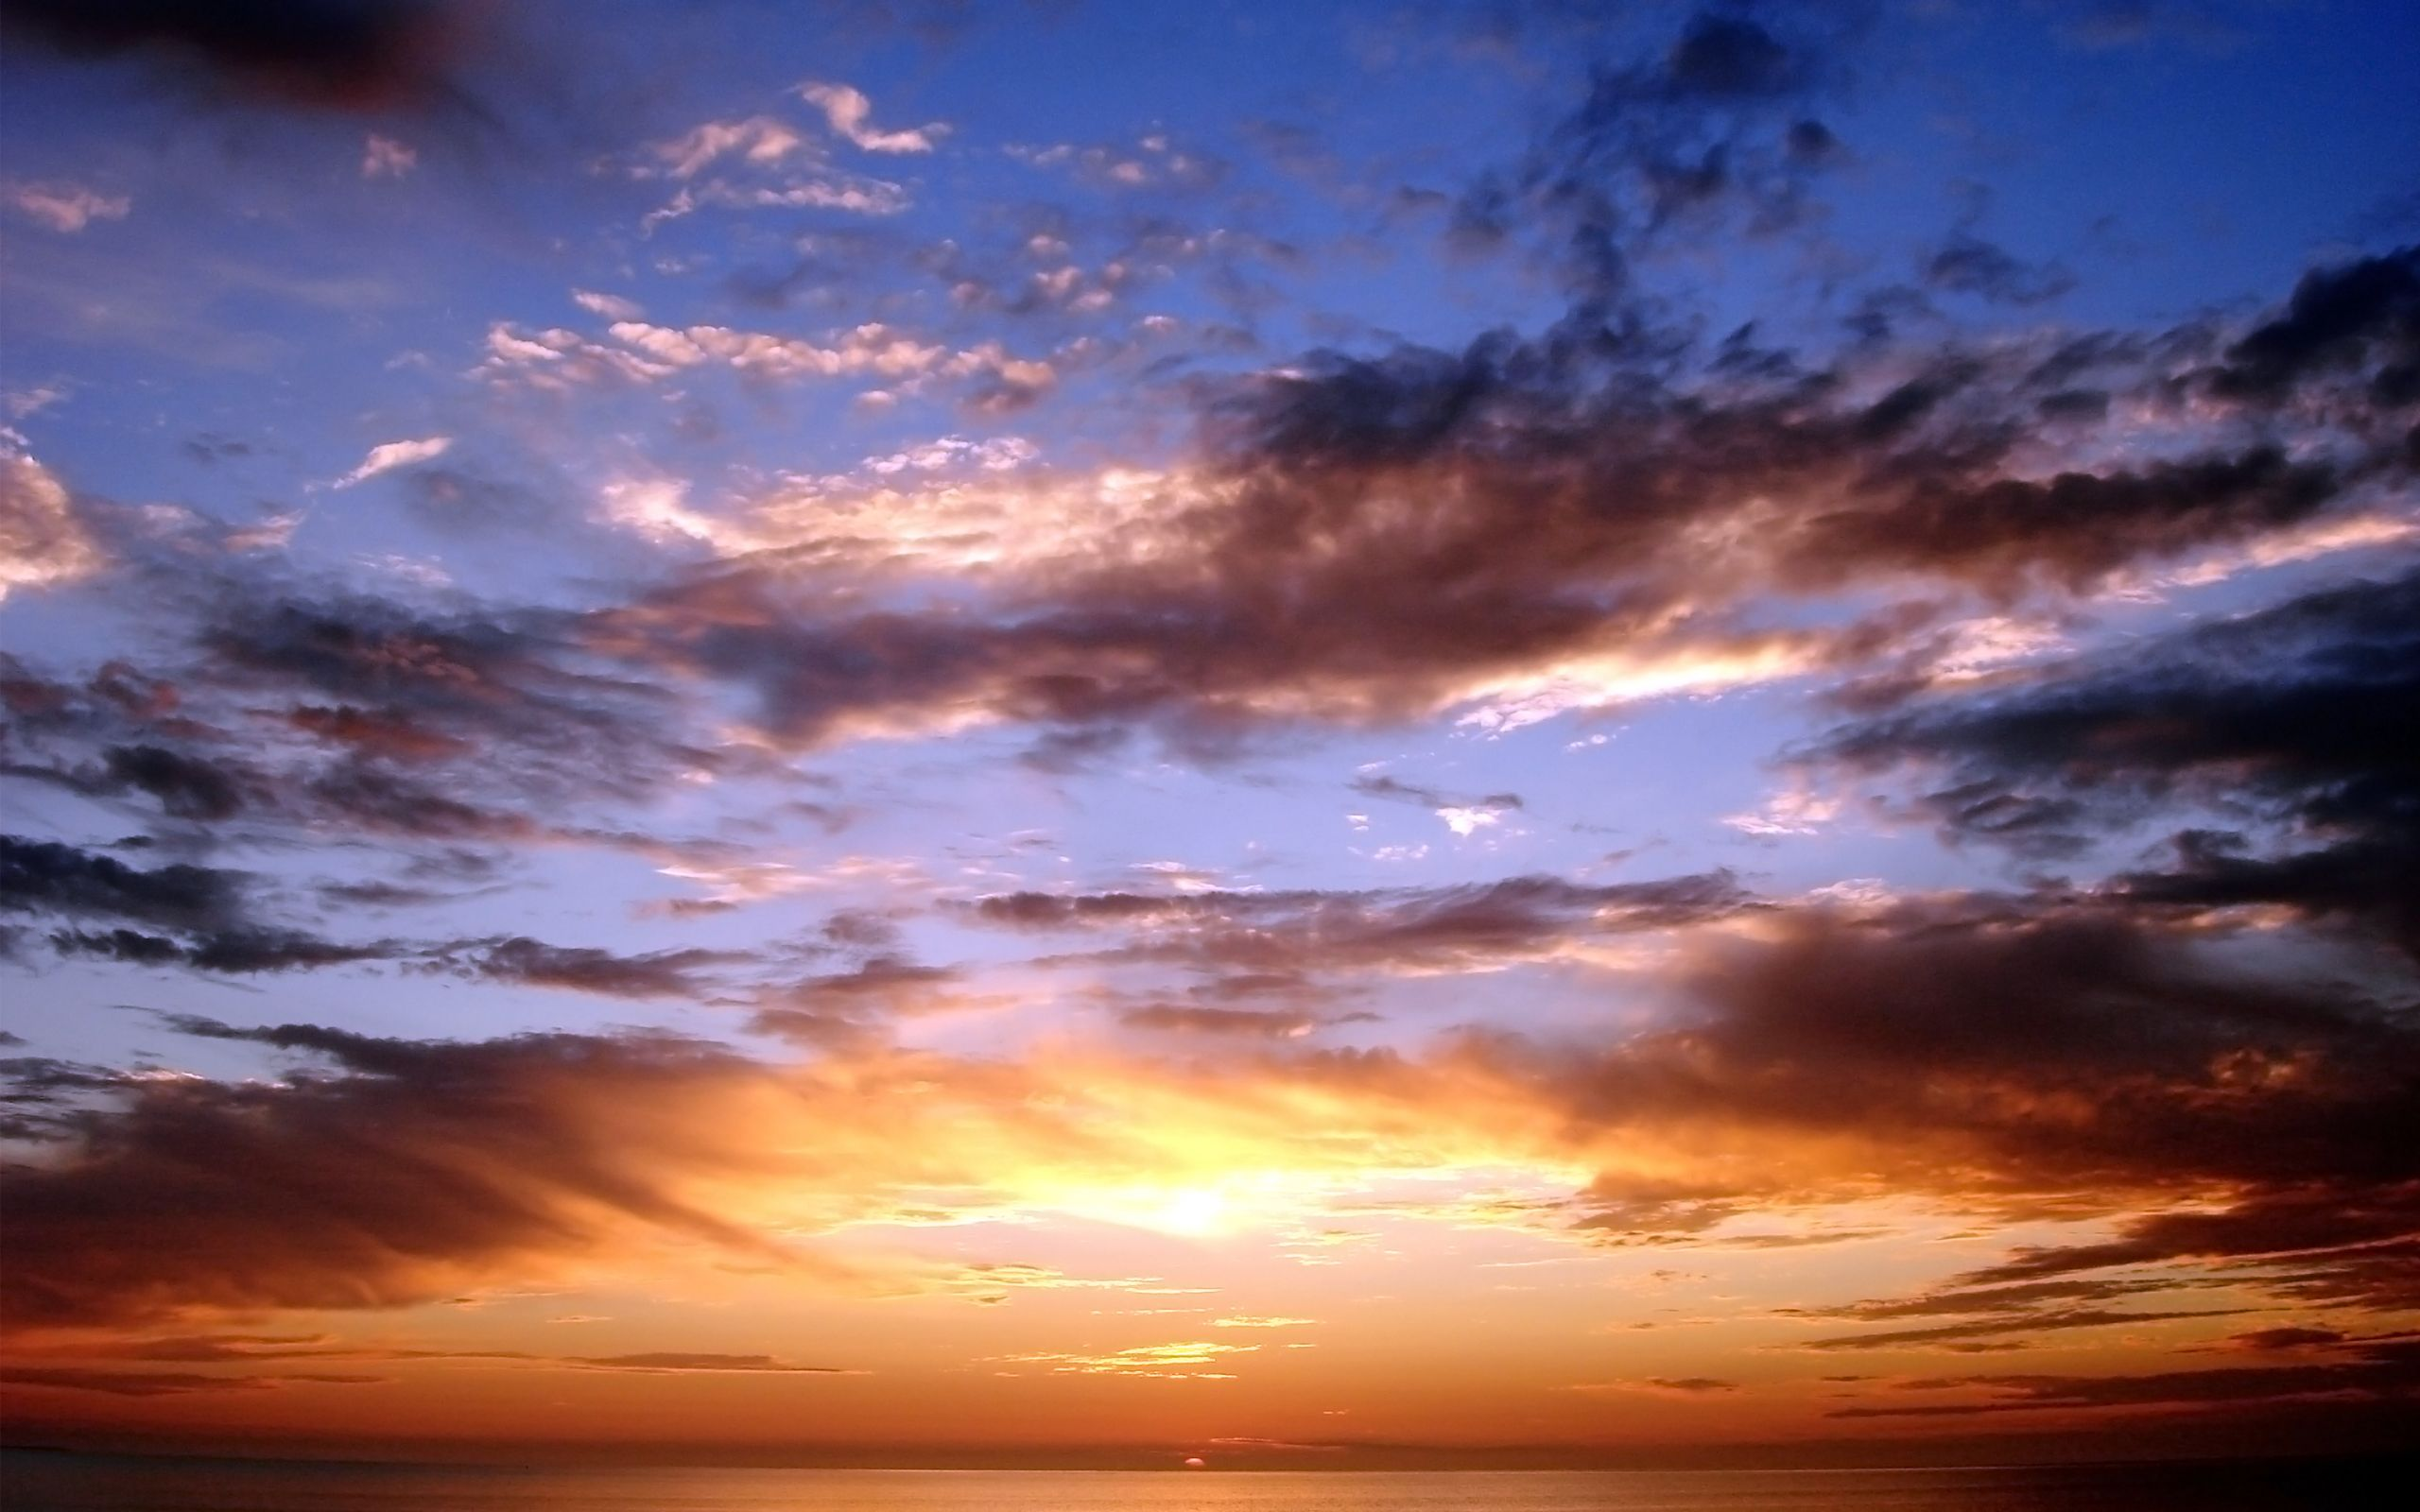 Find Out Sunset Sky Hd Wallpaper Wallpaper On Http Hdpicorner Com Sunset Sky Hd Wallpaper